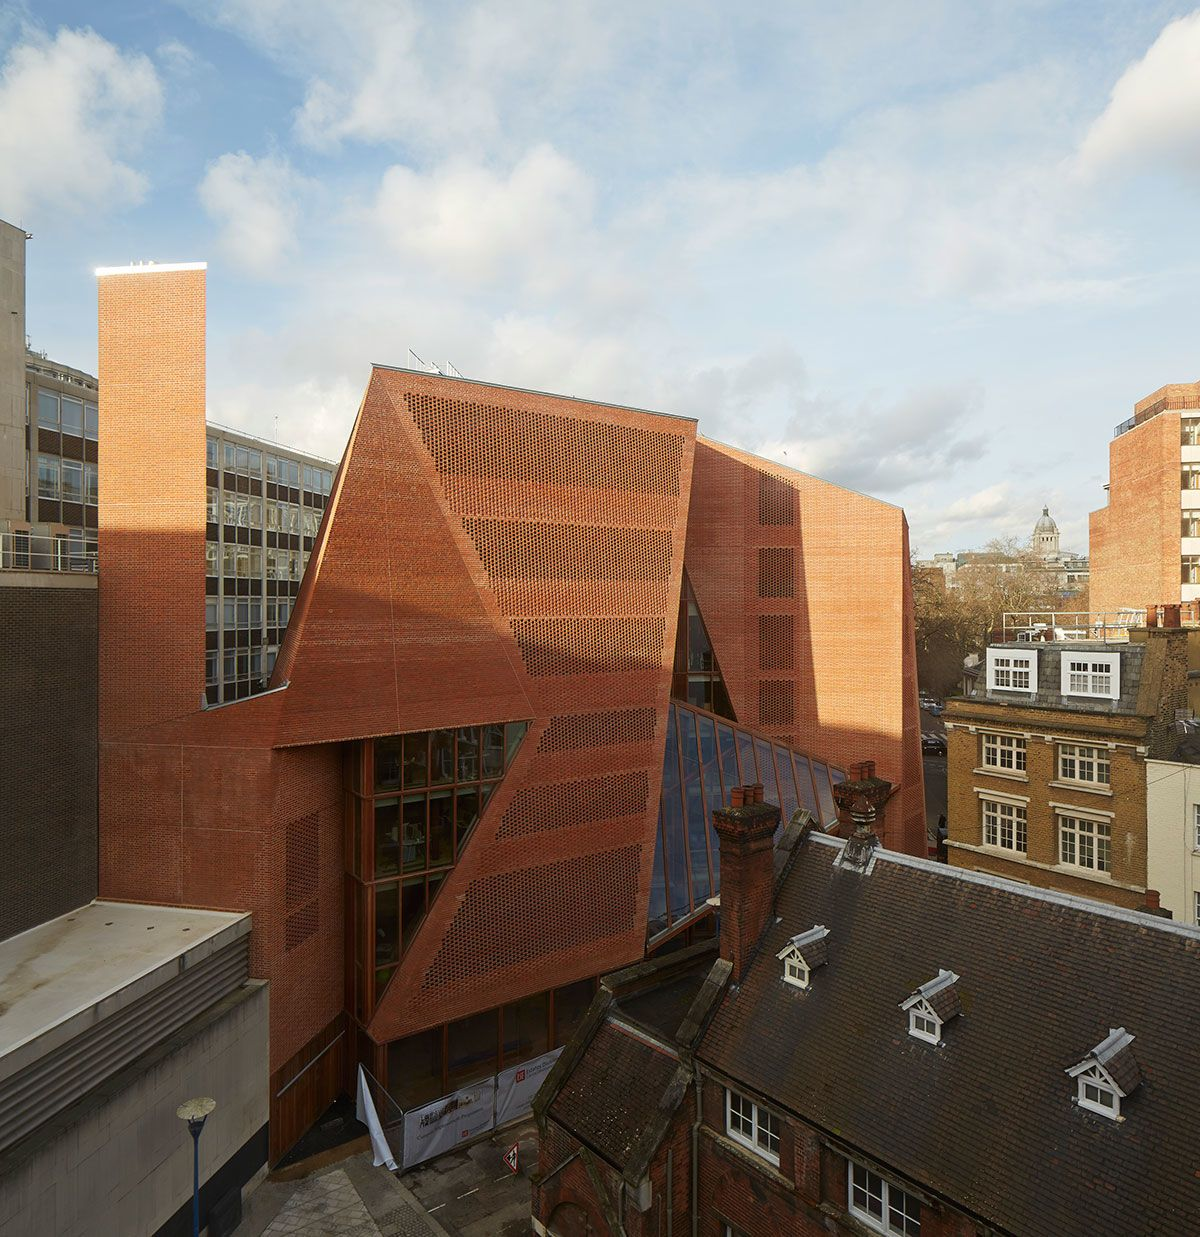 O'Donnell   Tuomey Architects, George Messaritakis, Dennis Gilbert · Saw Swee Hock Student Centre, London School of Economics